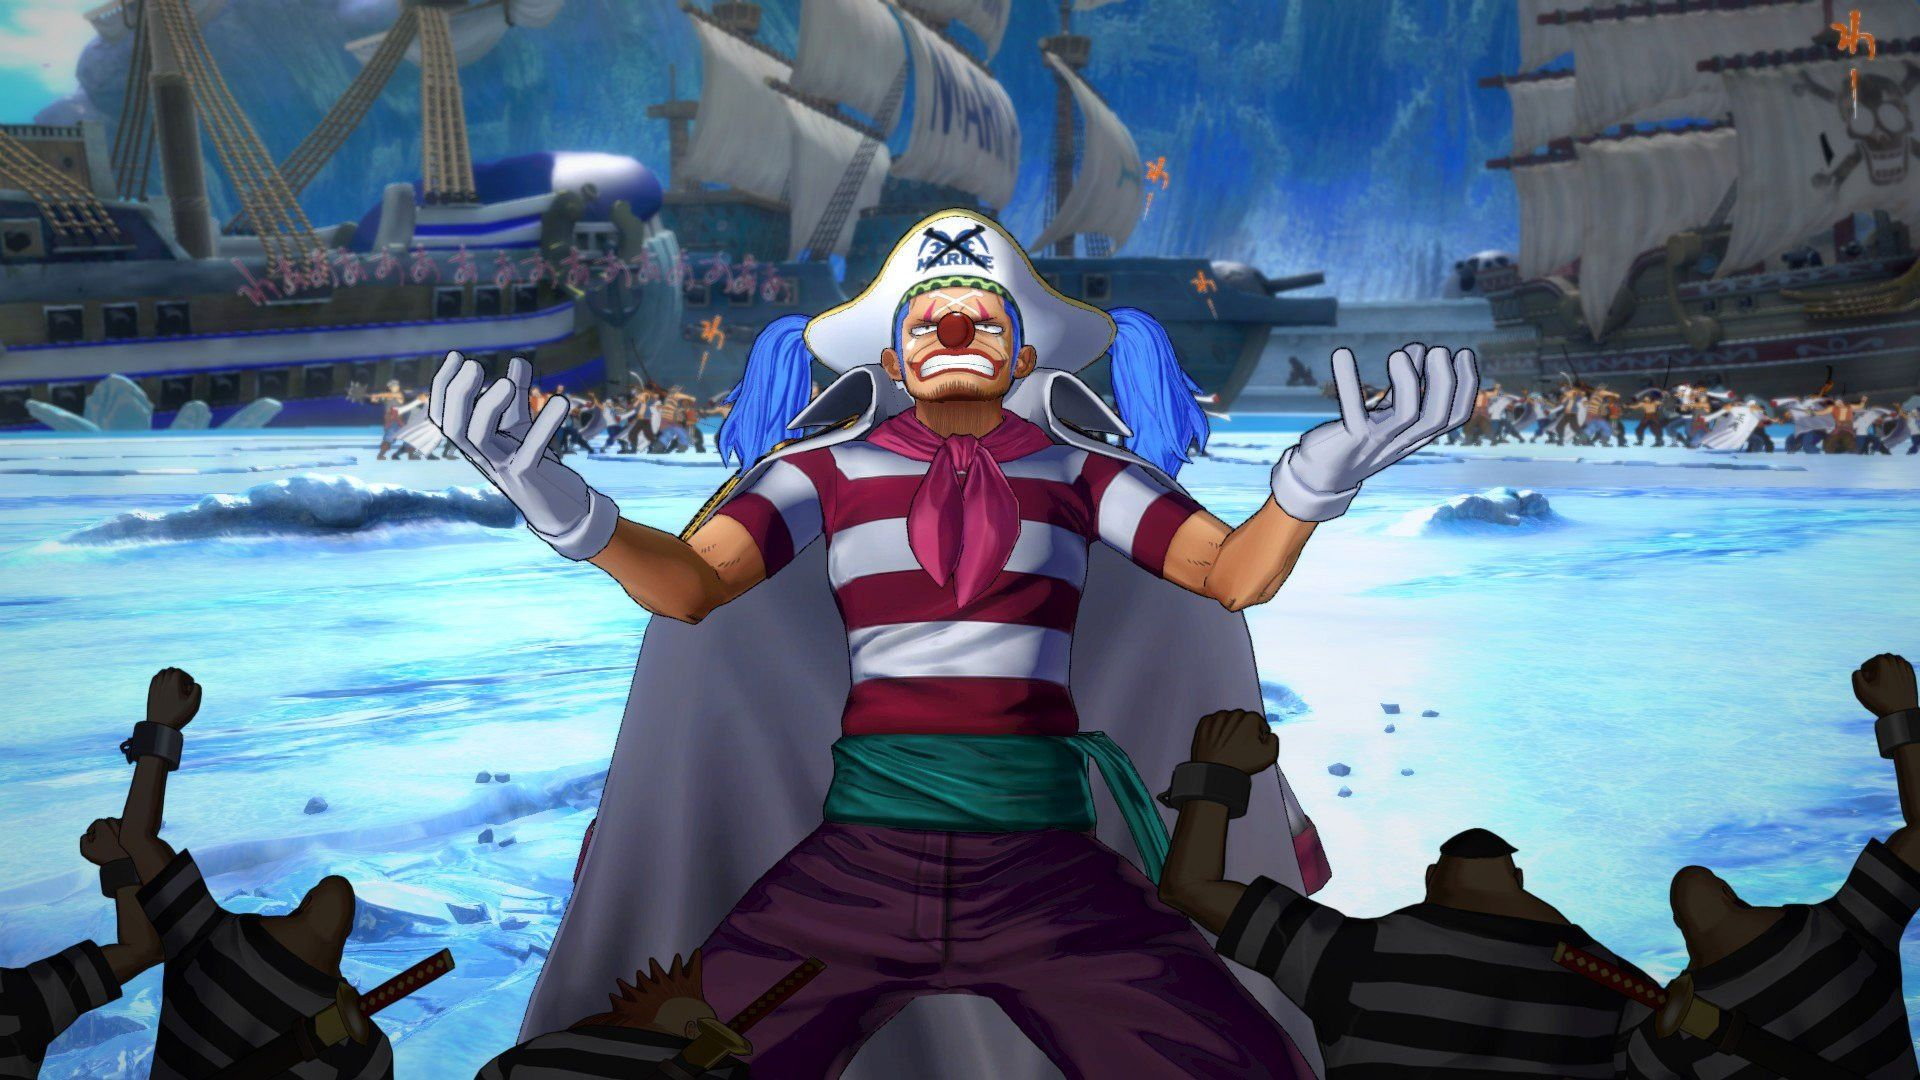 #OnePieceBurningBlood #OnePiece #PS4 #PlayStation4